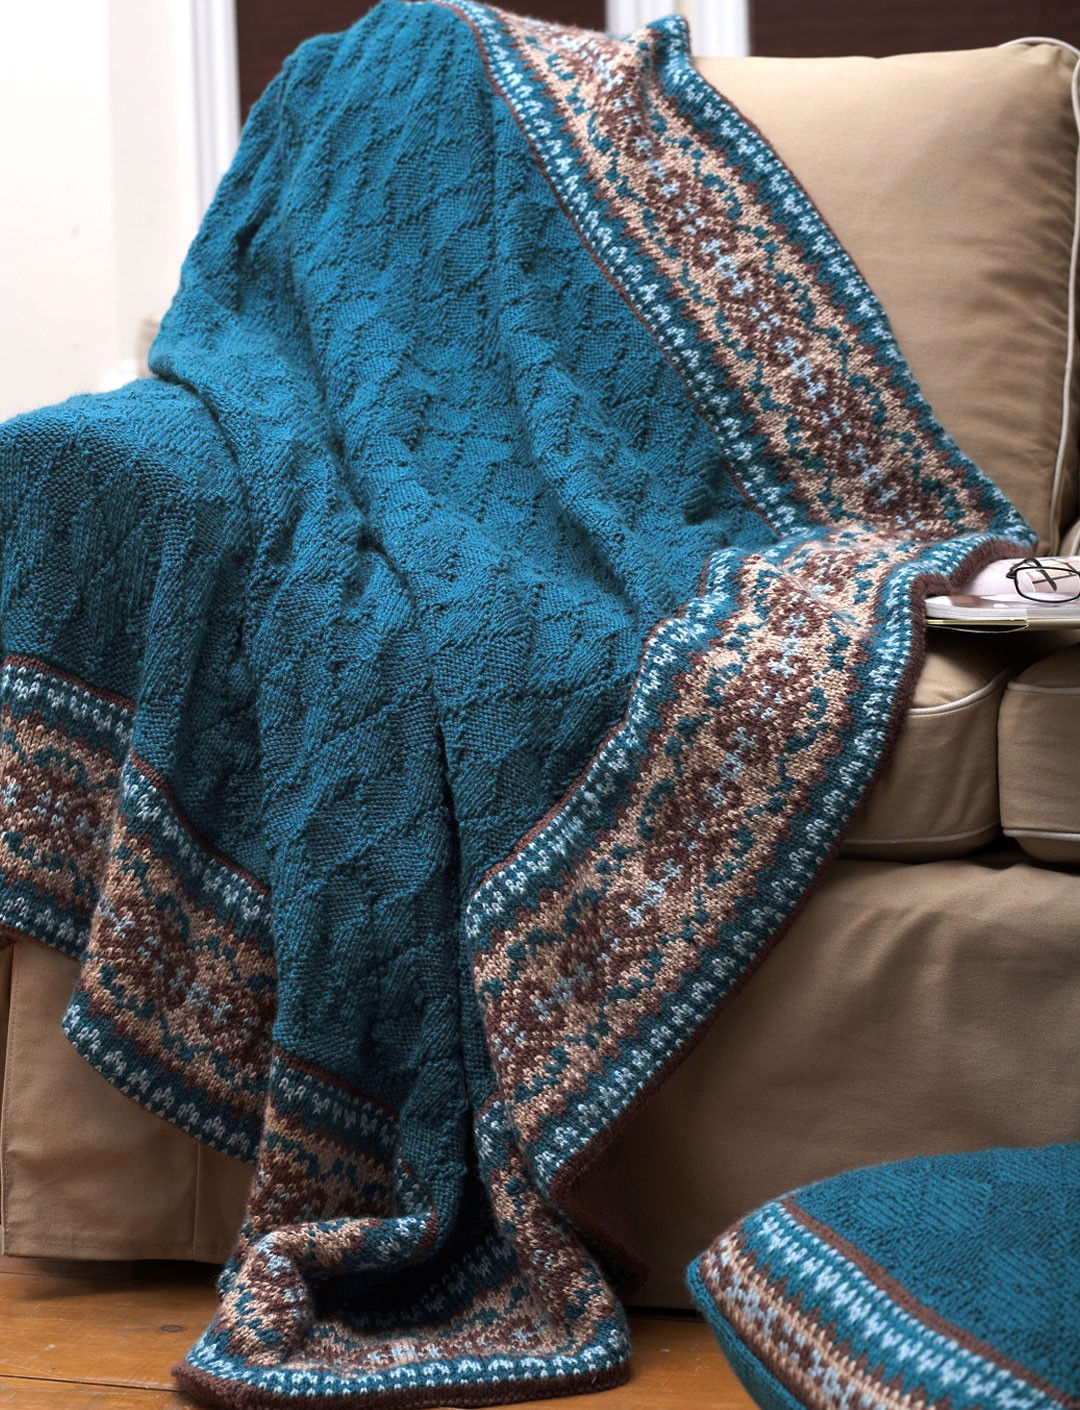 Knitted Baskets Free Patterns : Patons Fair Isle Border Blanket and Pillow, Knit Pattern Yarnspirations